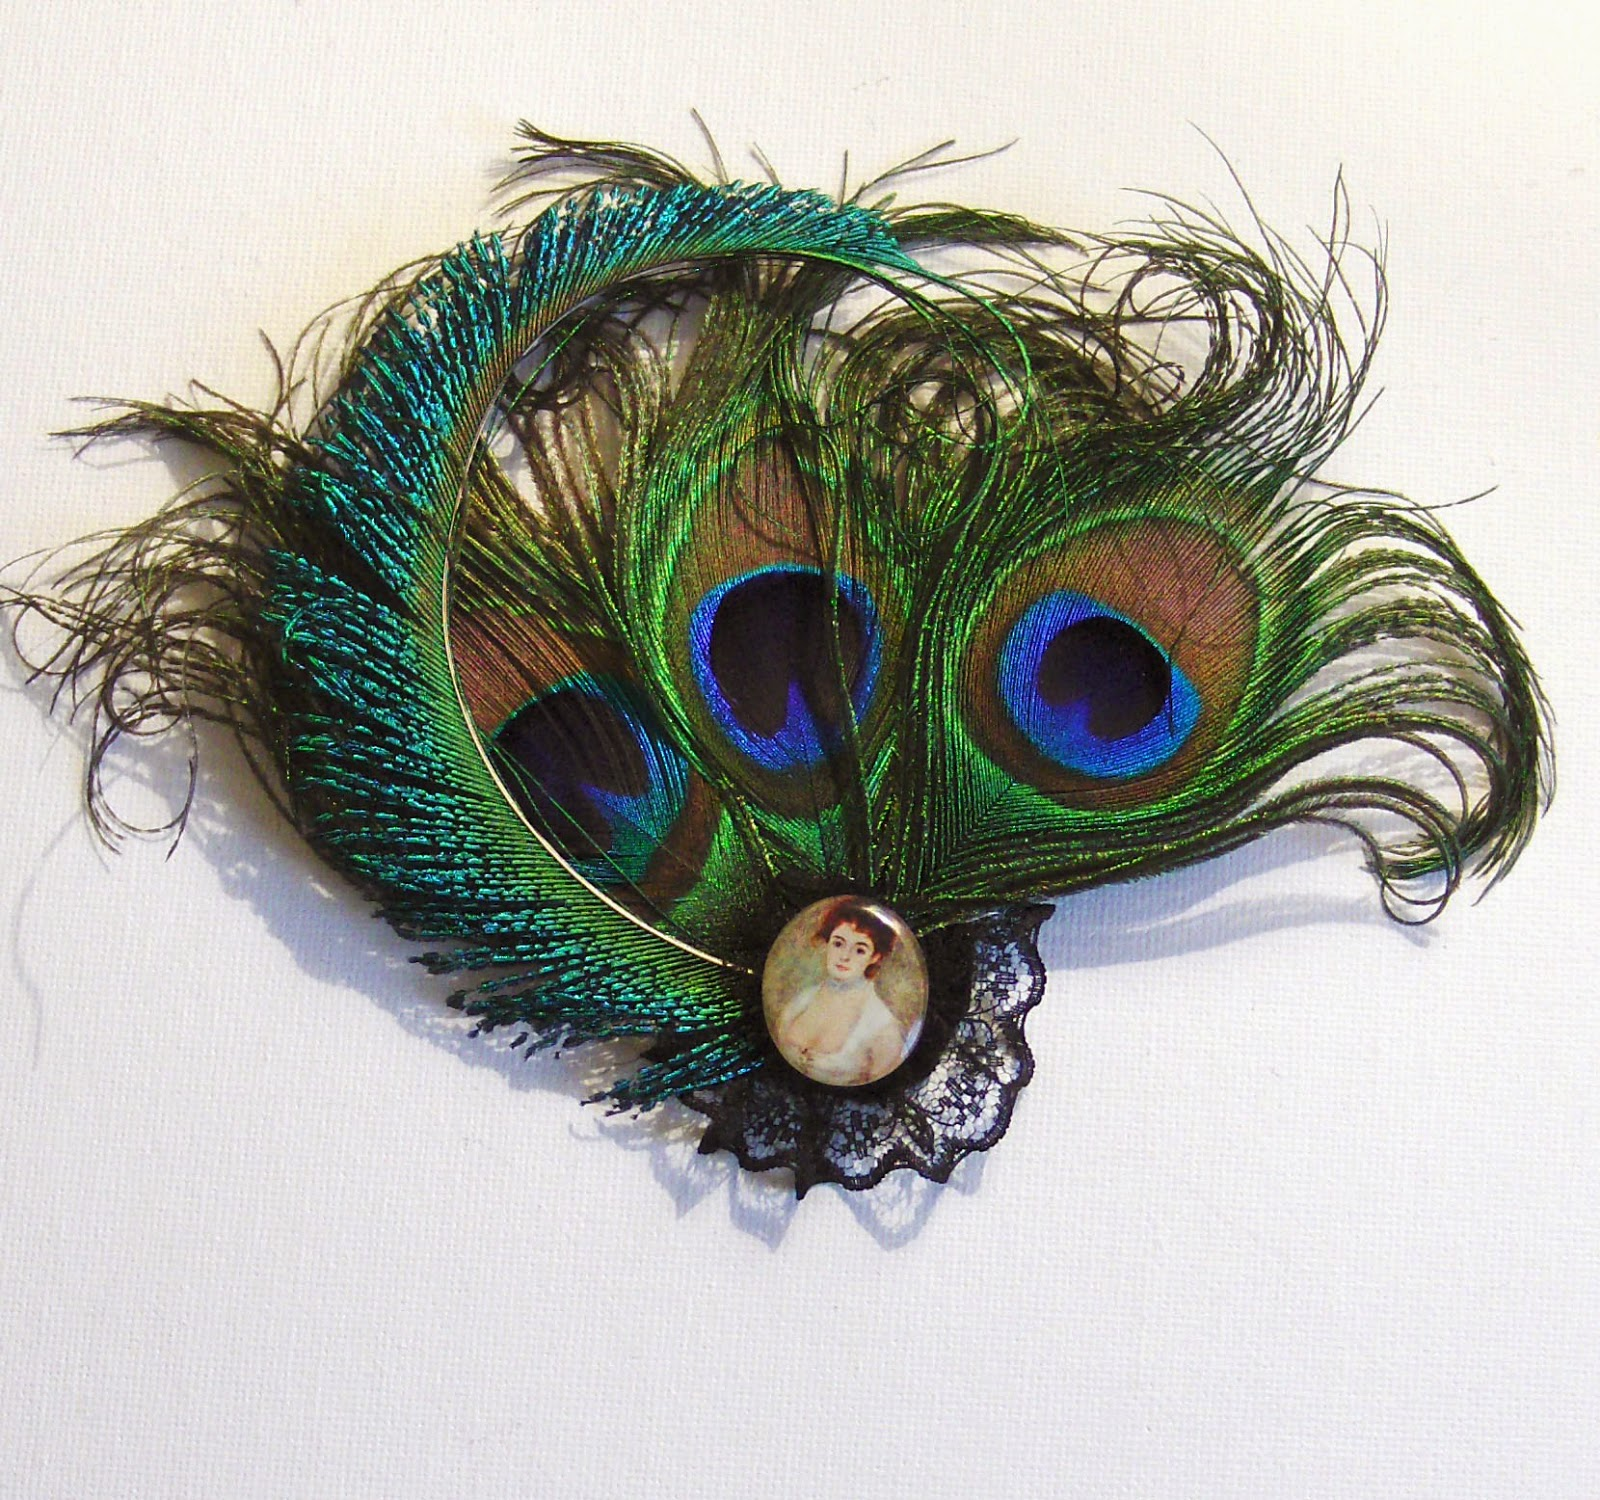 https://www.etsy.com/uk/listing/185167070/peacock-feather-cameo-fascinator-uk?ref=shop_home_active_11